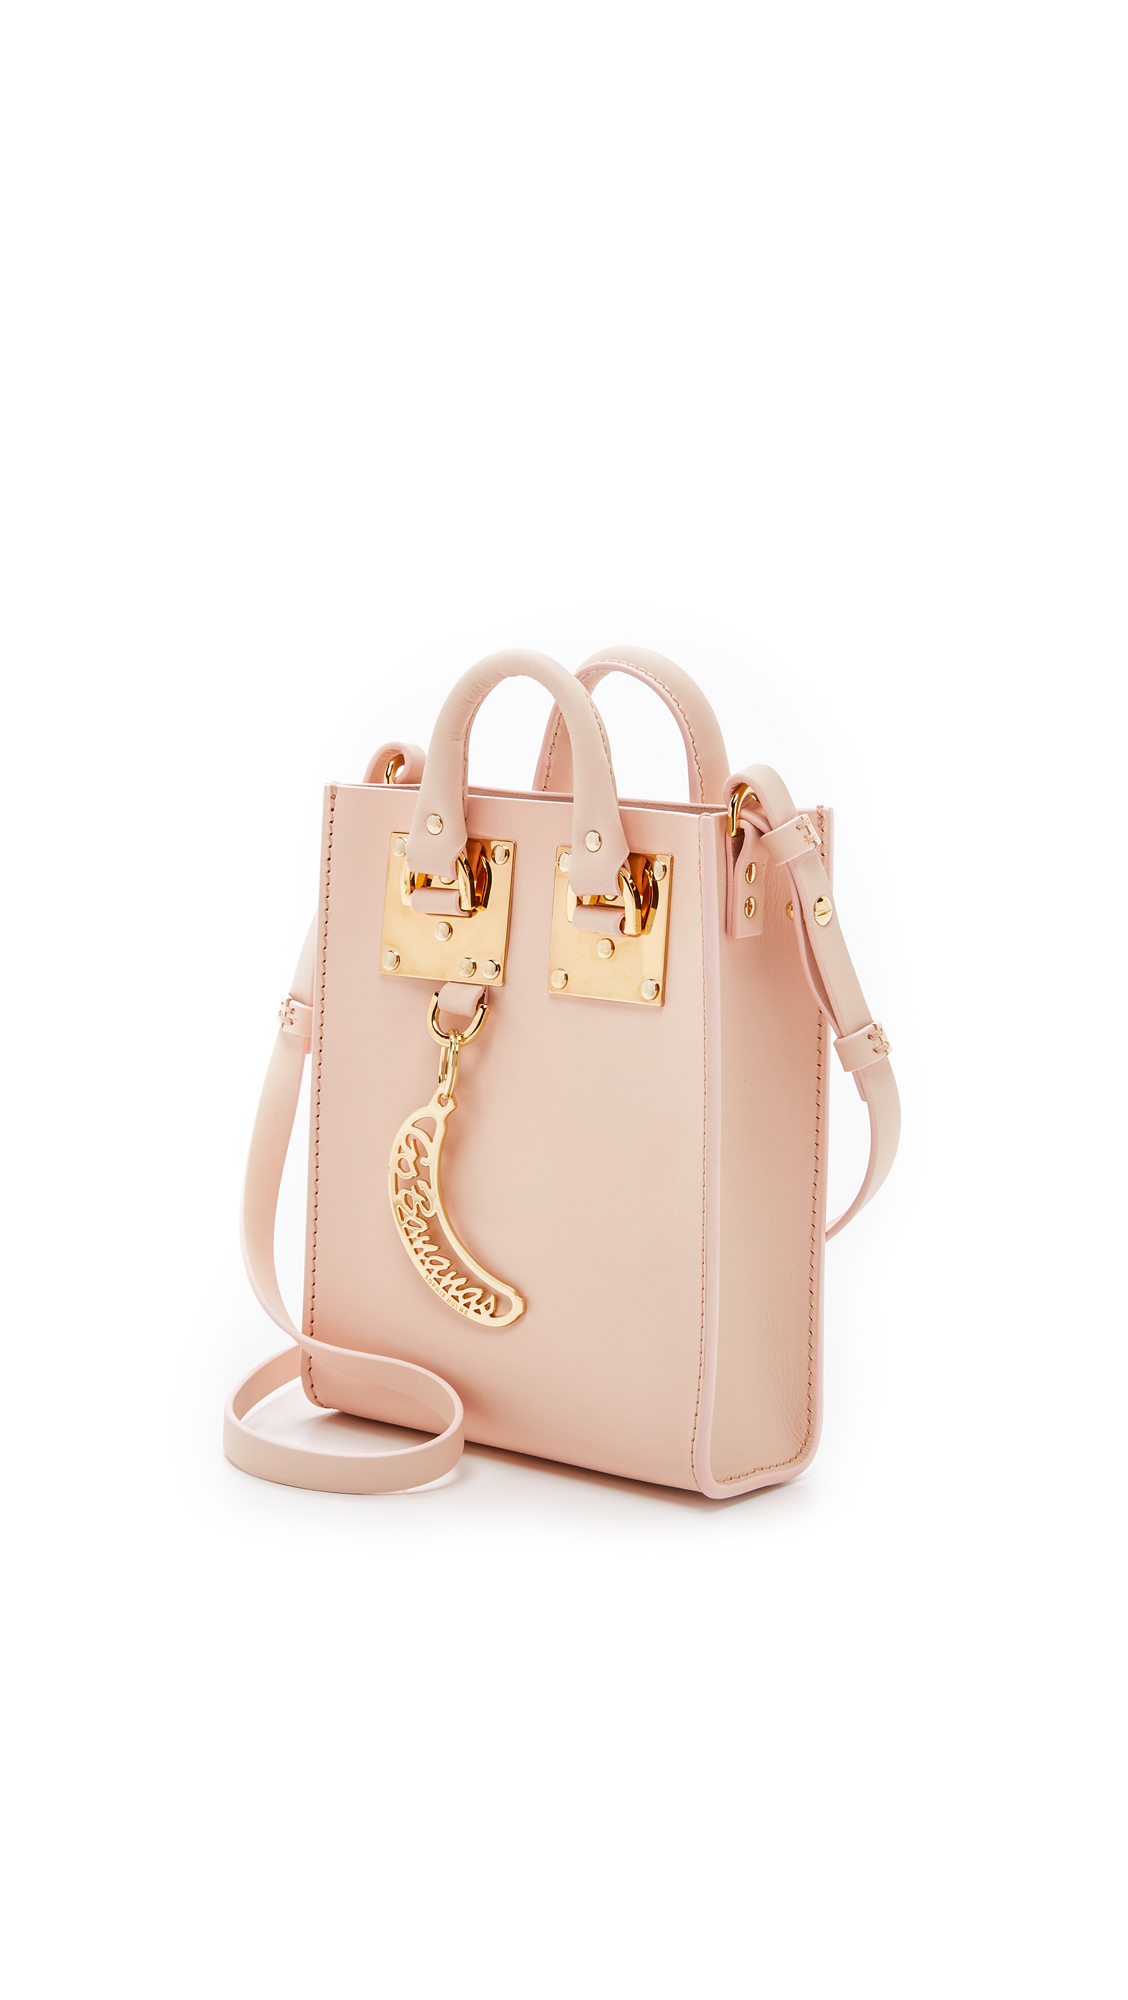 Sophie Hulme Nano Tote in Blossom Pink (Pink)